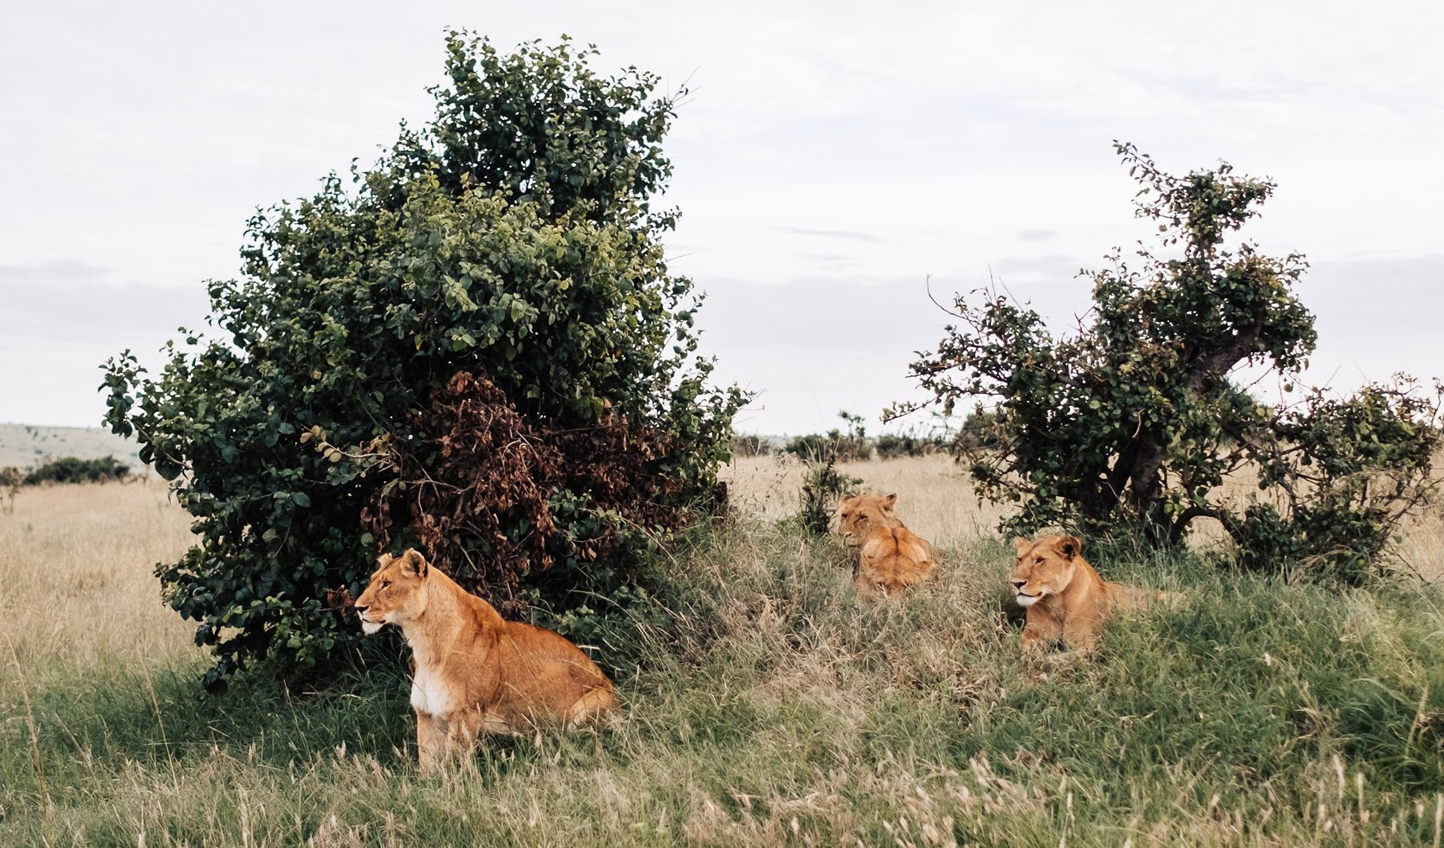 Catch sight of lions in the bush